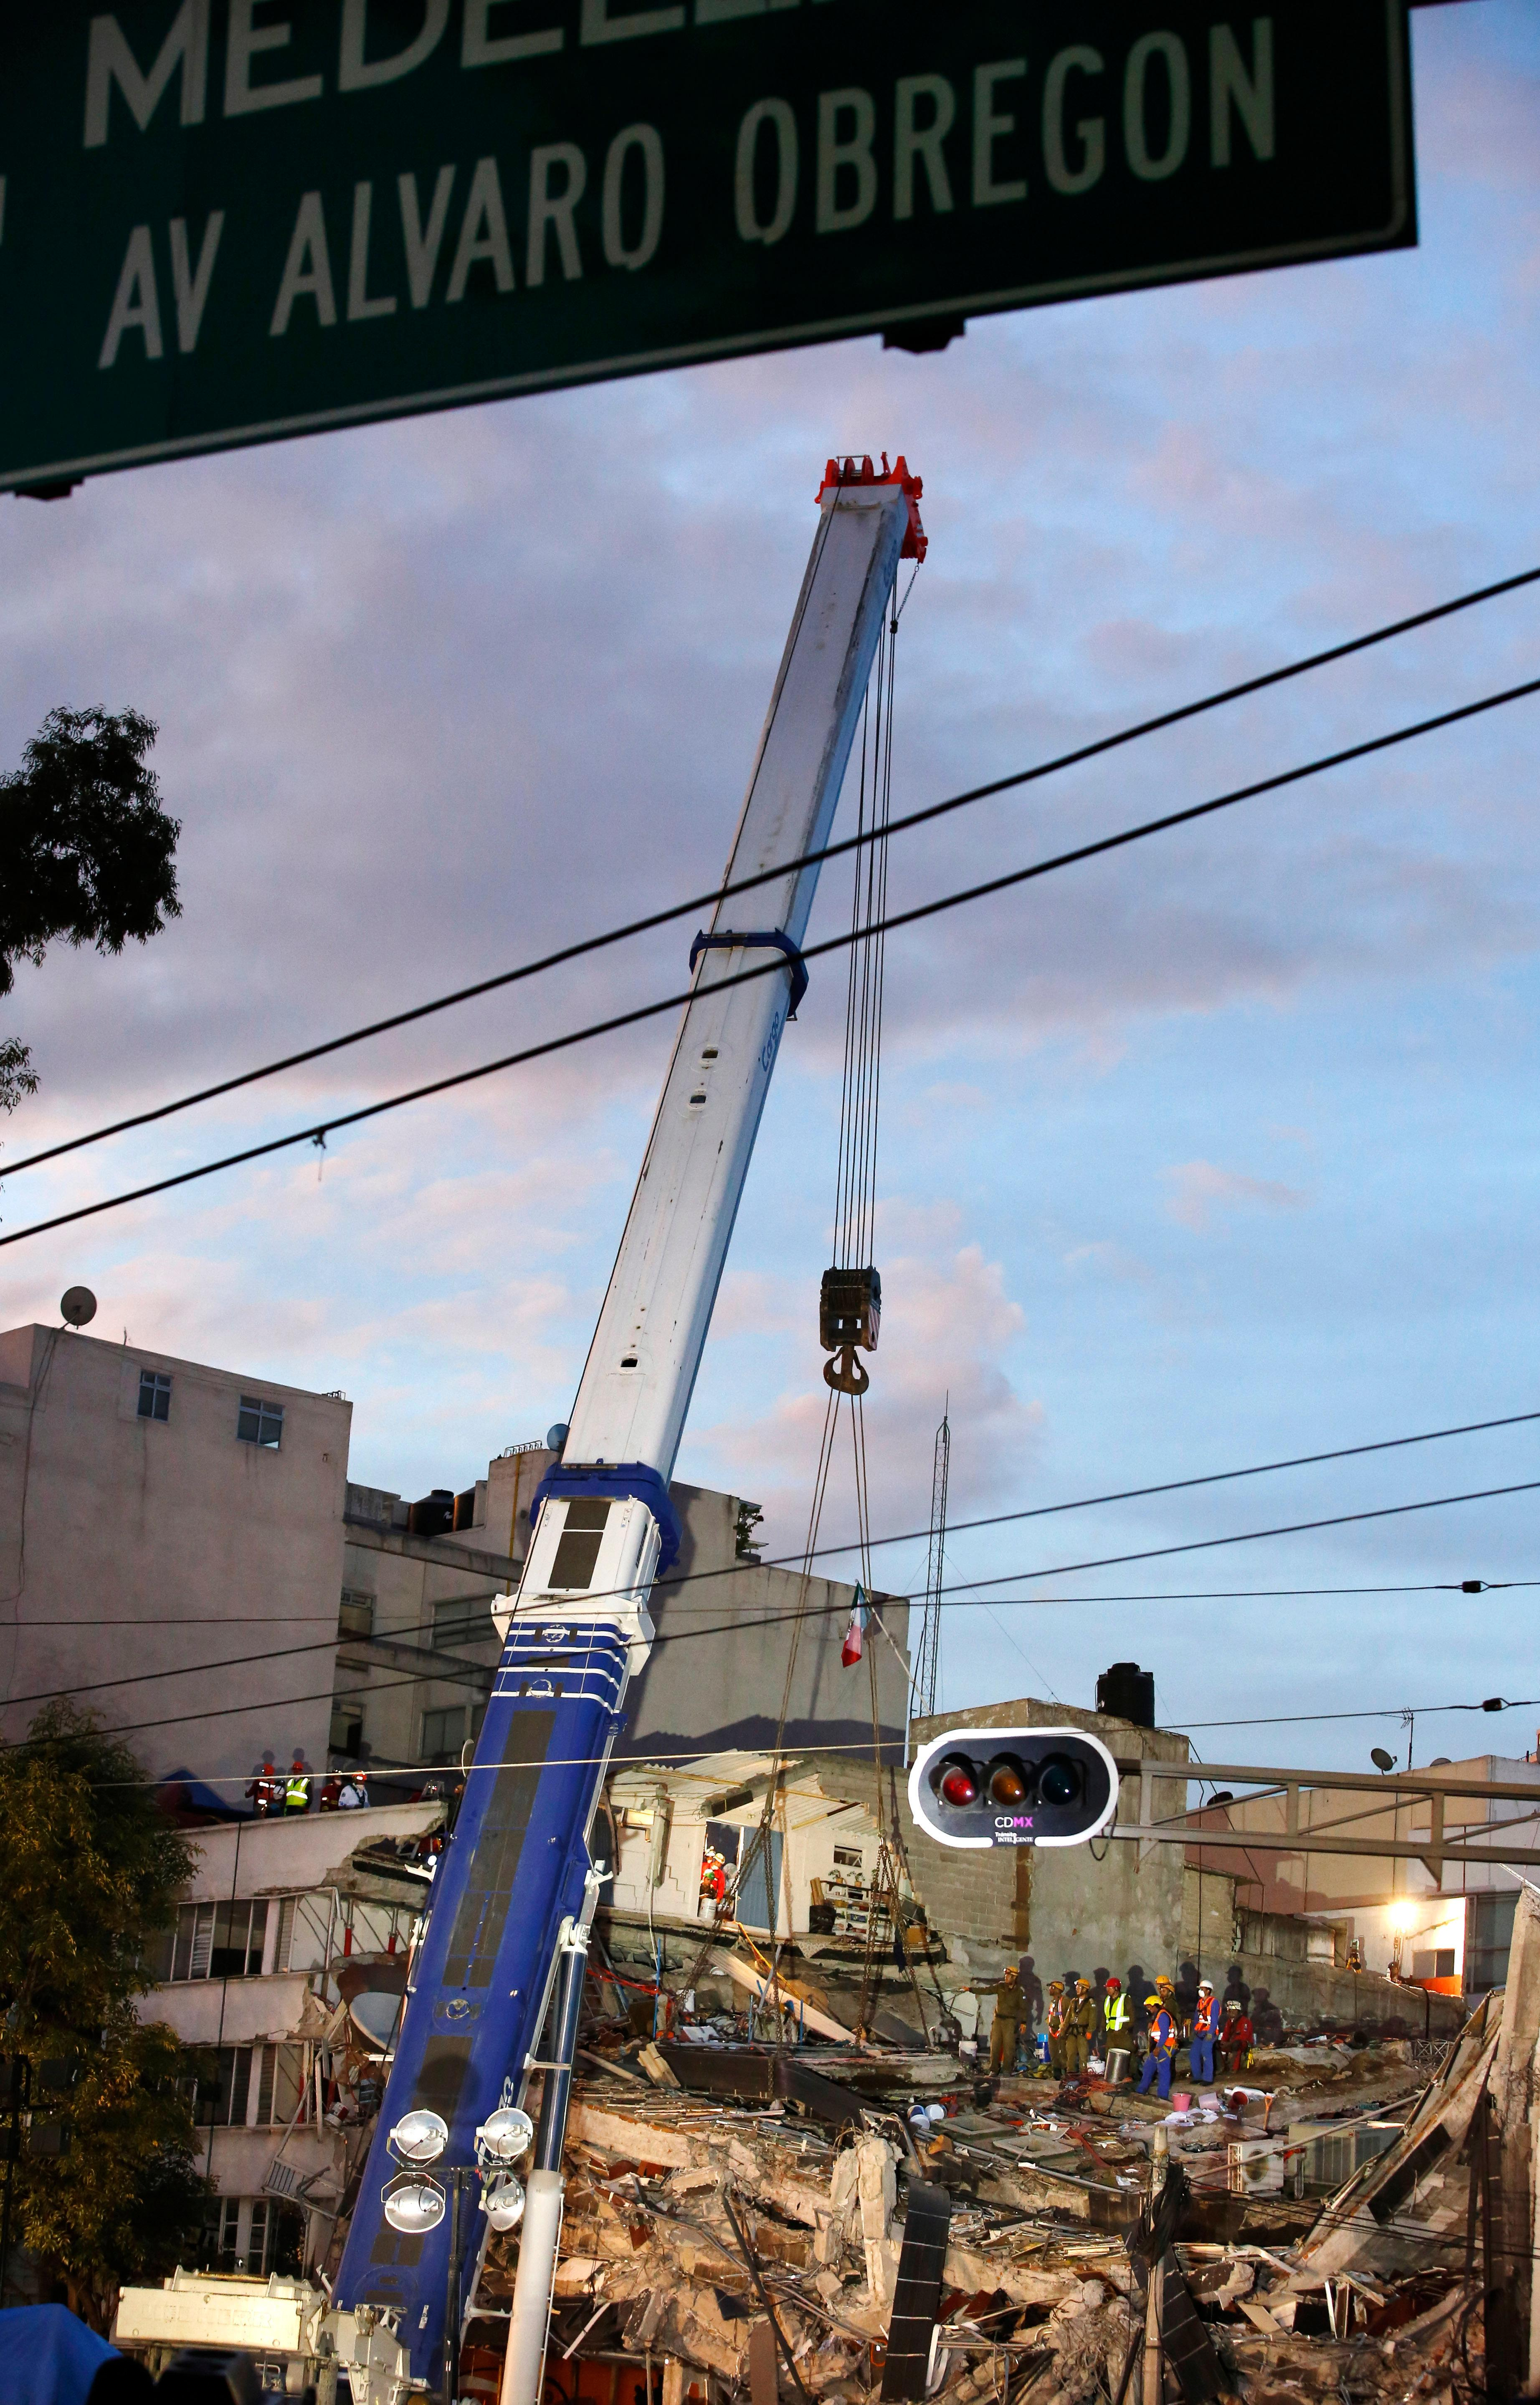 Israeli and Mexican rescue workers use a crane to lift a section of a felled building as rescue workers race against the clock to reach possible survivors trapped inside the office building on Alvaro Obregon Avenue in the Roma Norte neighborhood of Mexico City, at sunrise on Saturday, Sept. 23, 2017. A strong new earthquake shook Mexico on Saturday morning, causing street signs around the collapsed building to sway and rescue workers to evacuate the site temporarily. (AP Photo/Rebecca Blackwell)